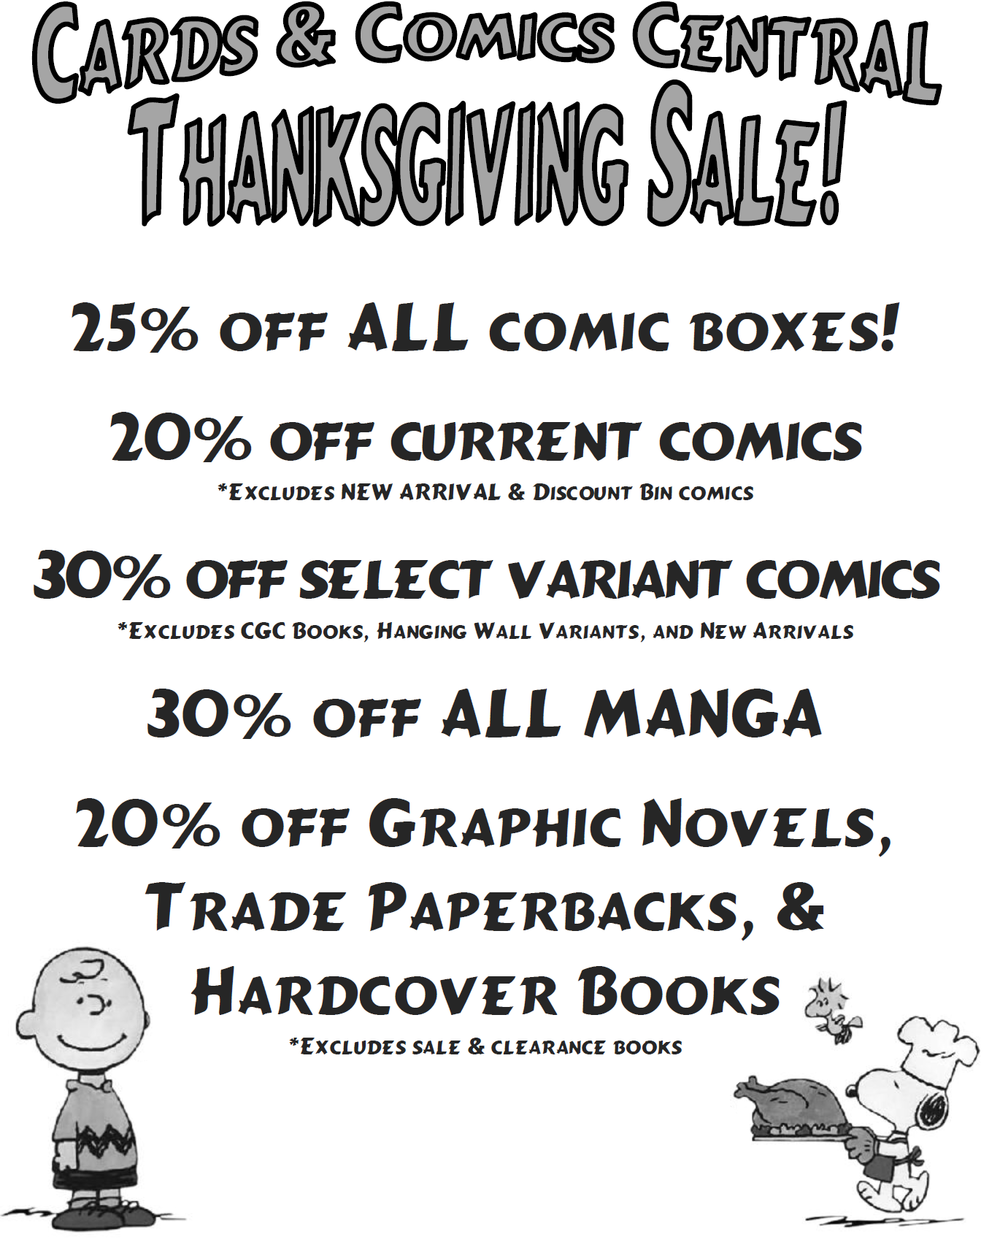 ThanksgivingSale_COMICS.png